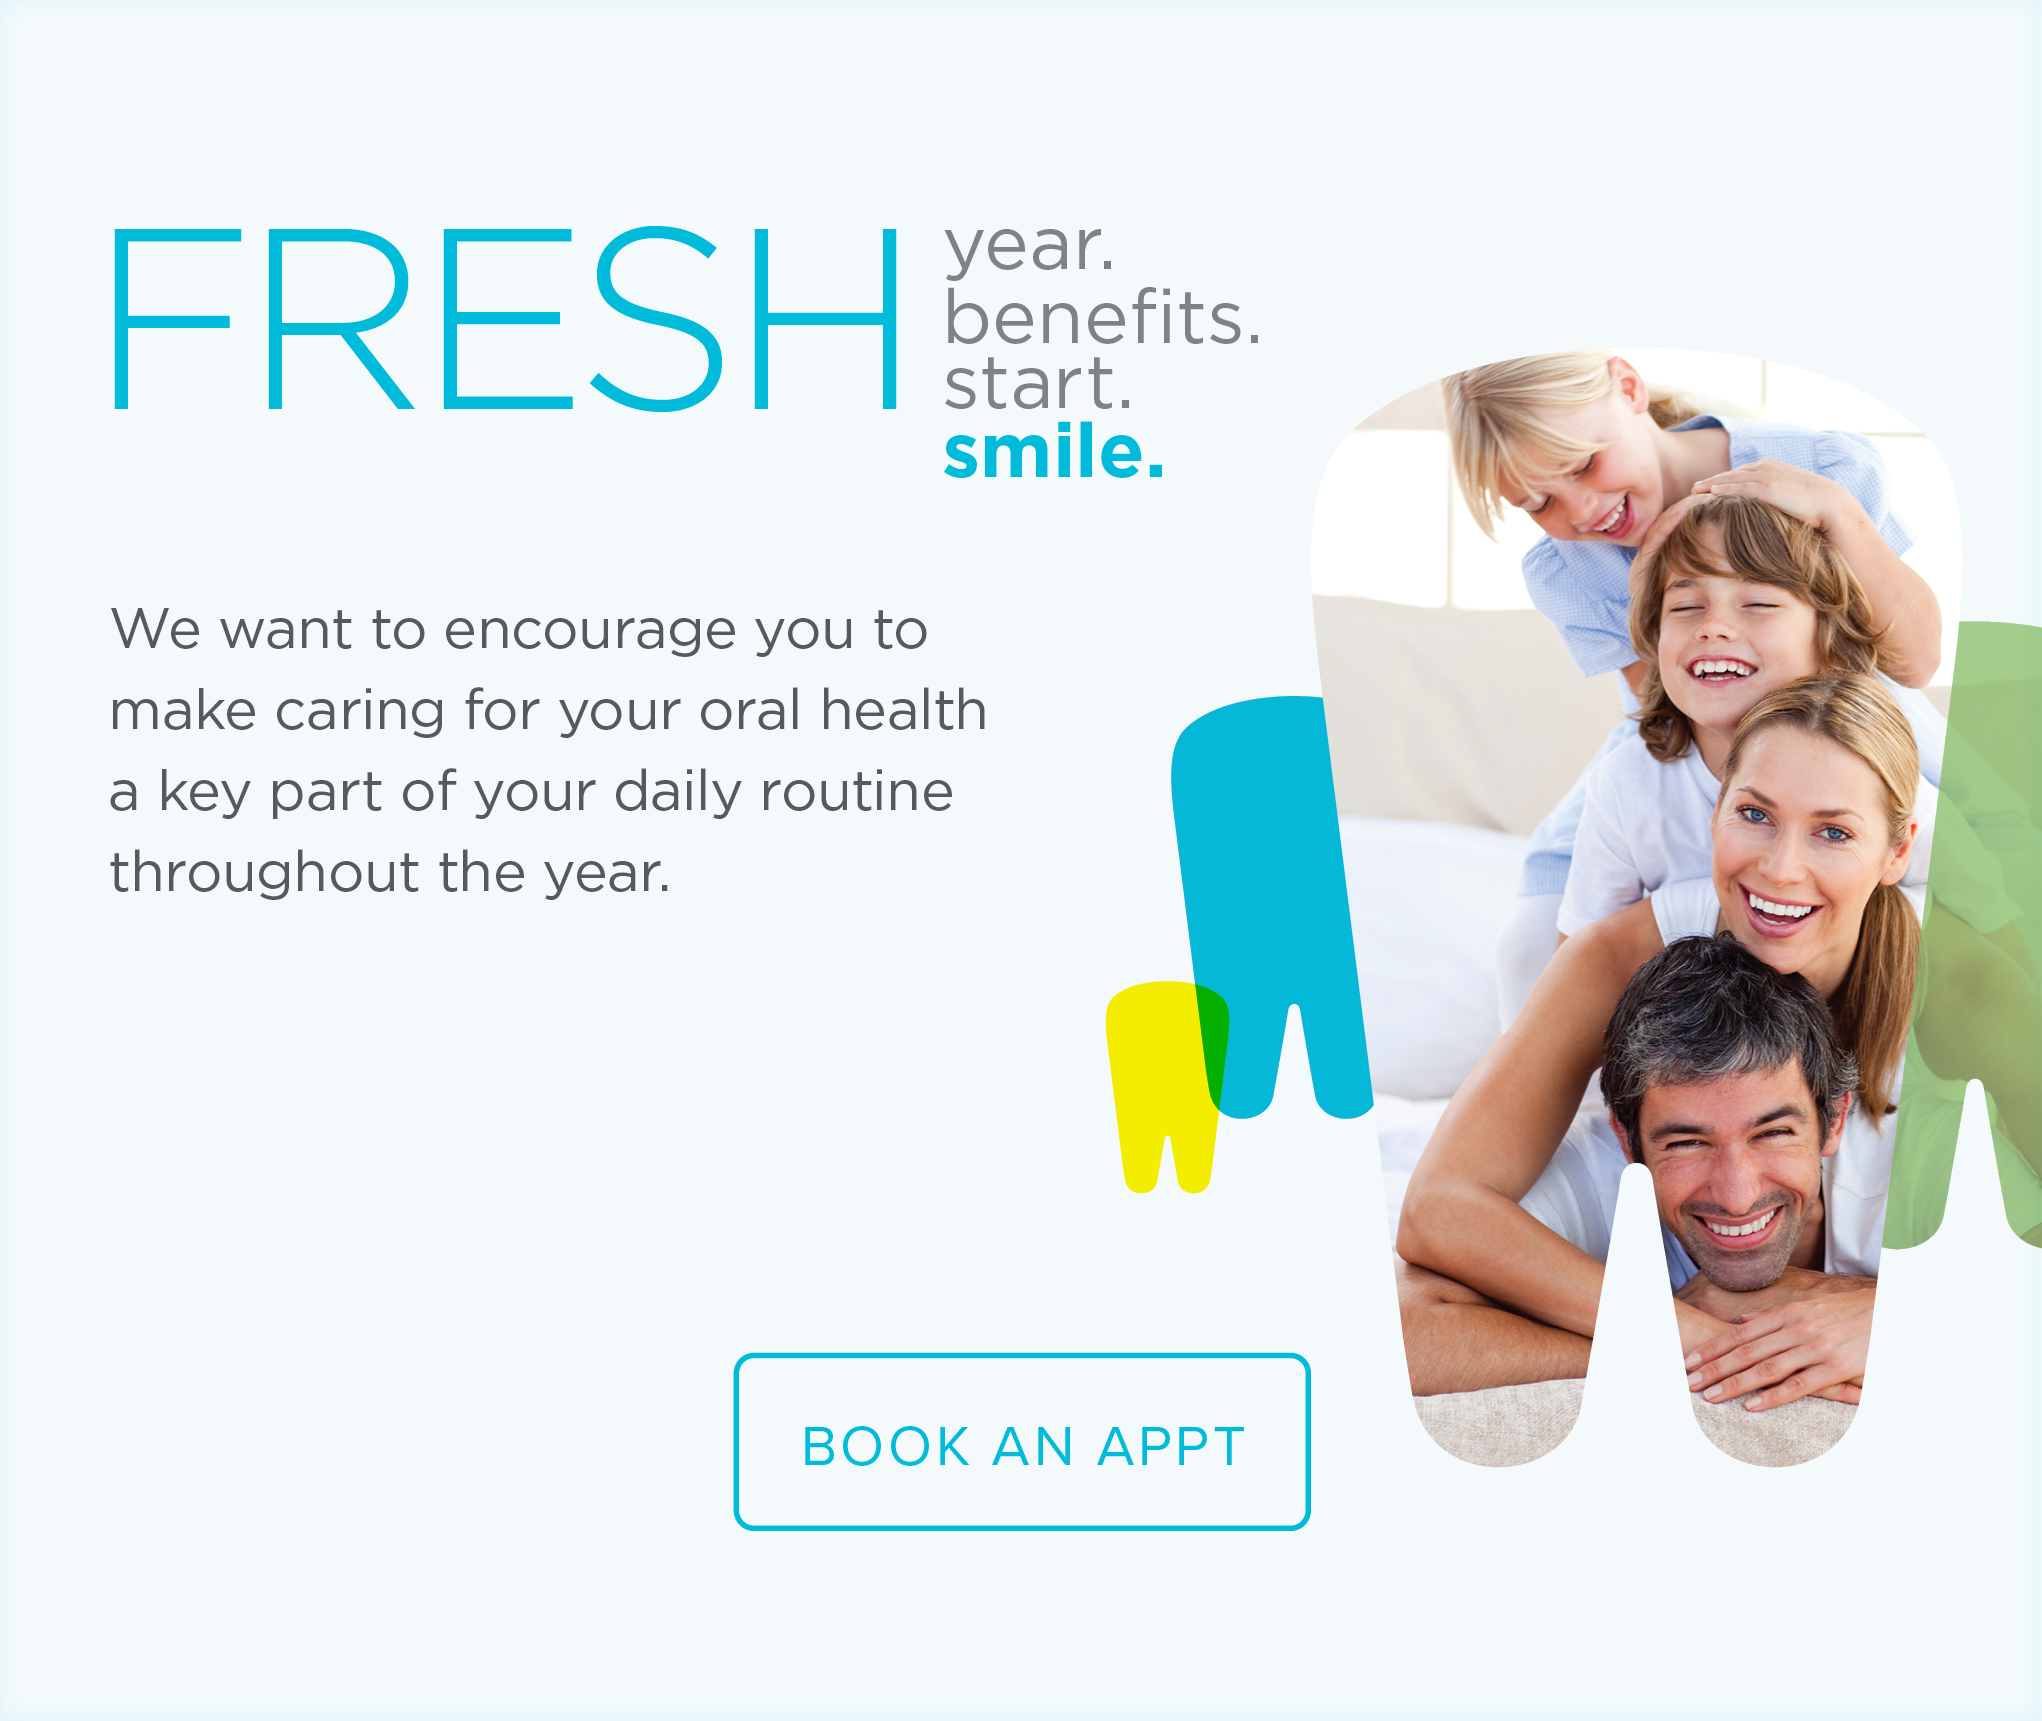 Stonecrest Dental Group and Orthodontics - Make the Most of Your Benefits